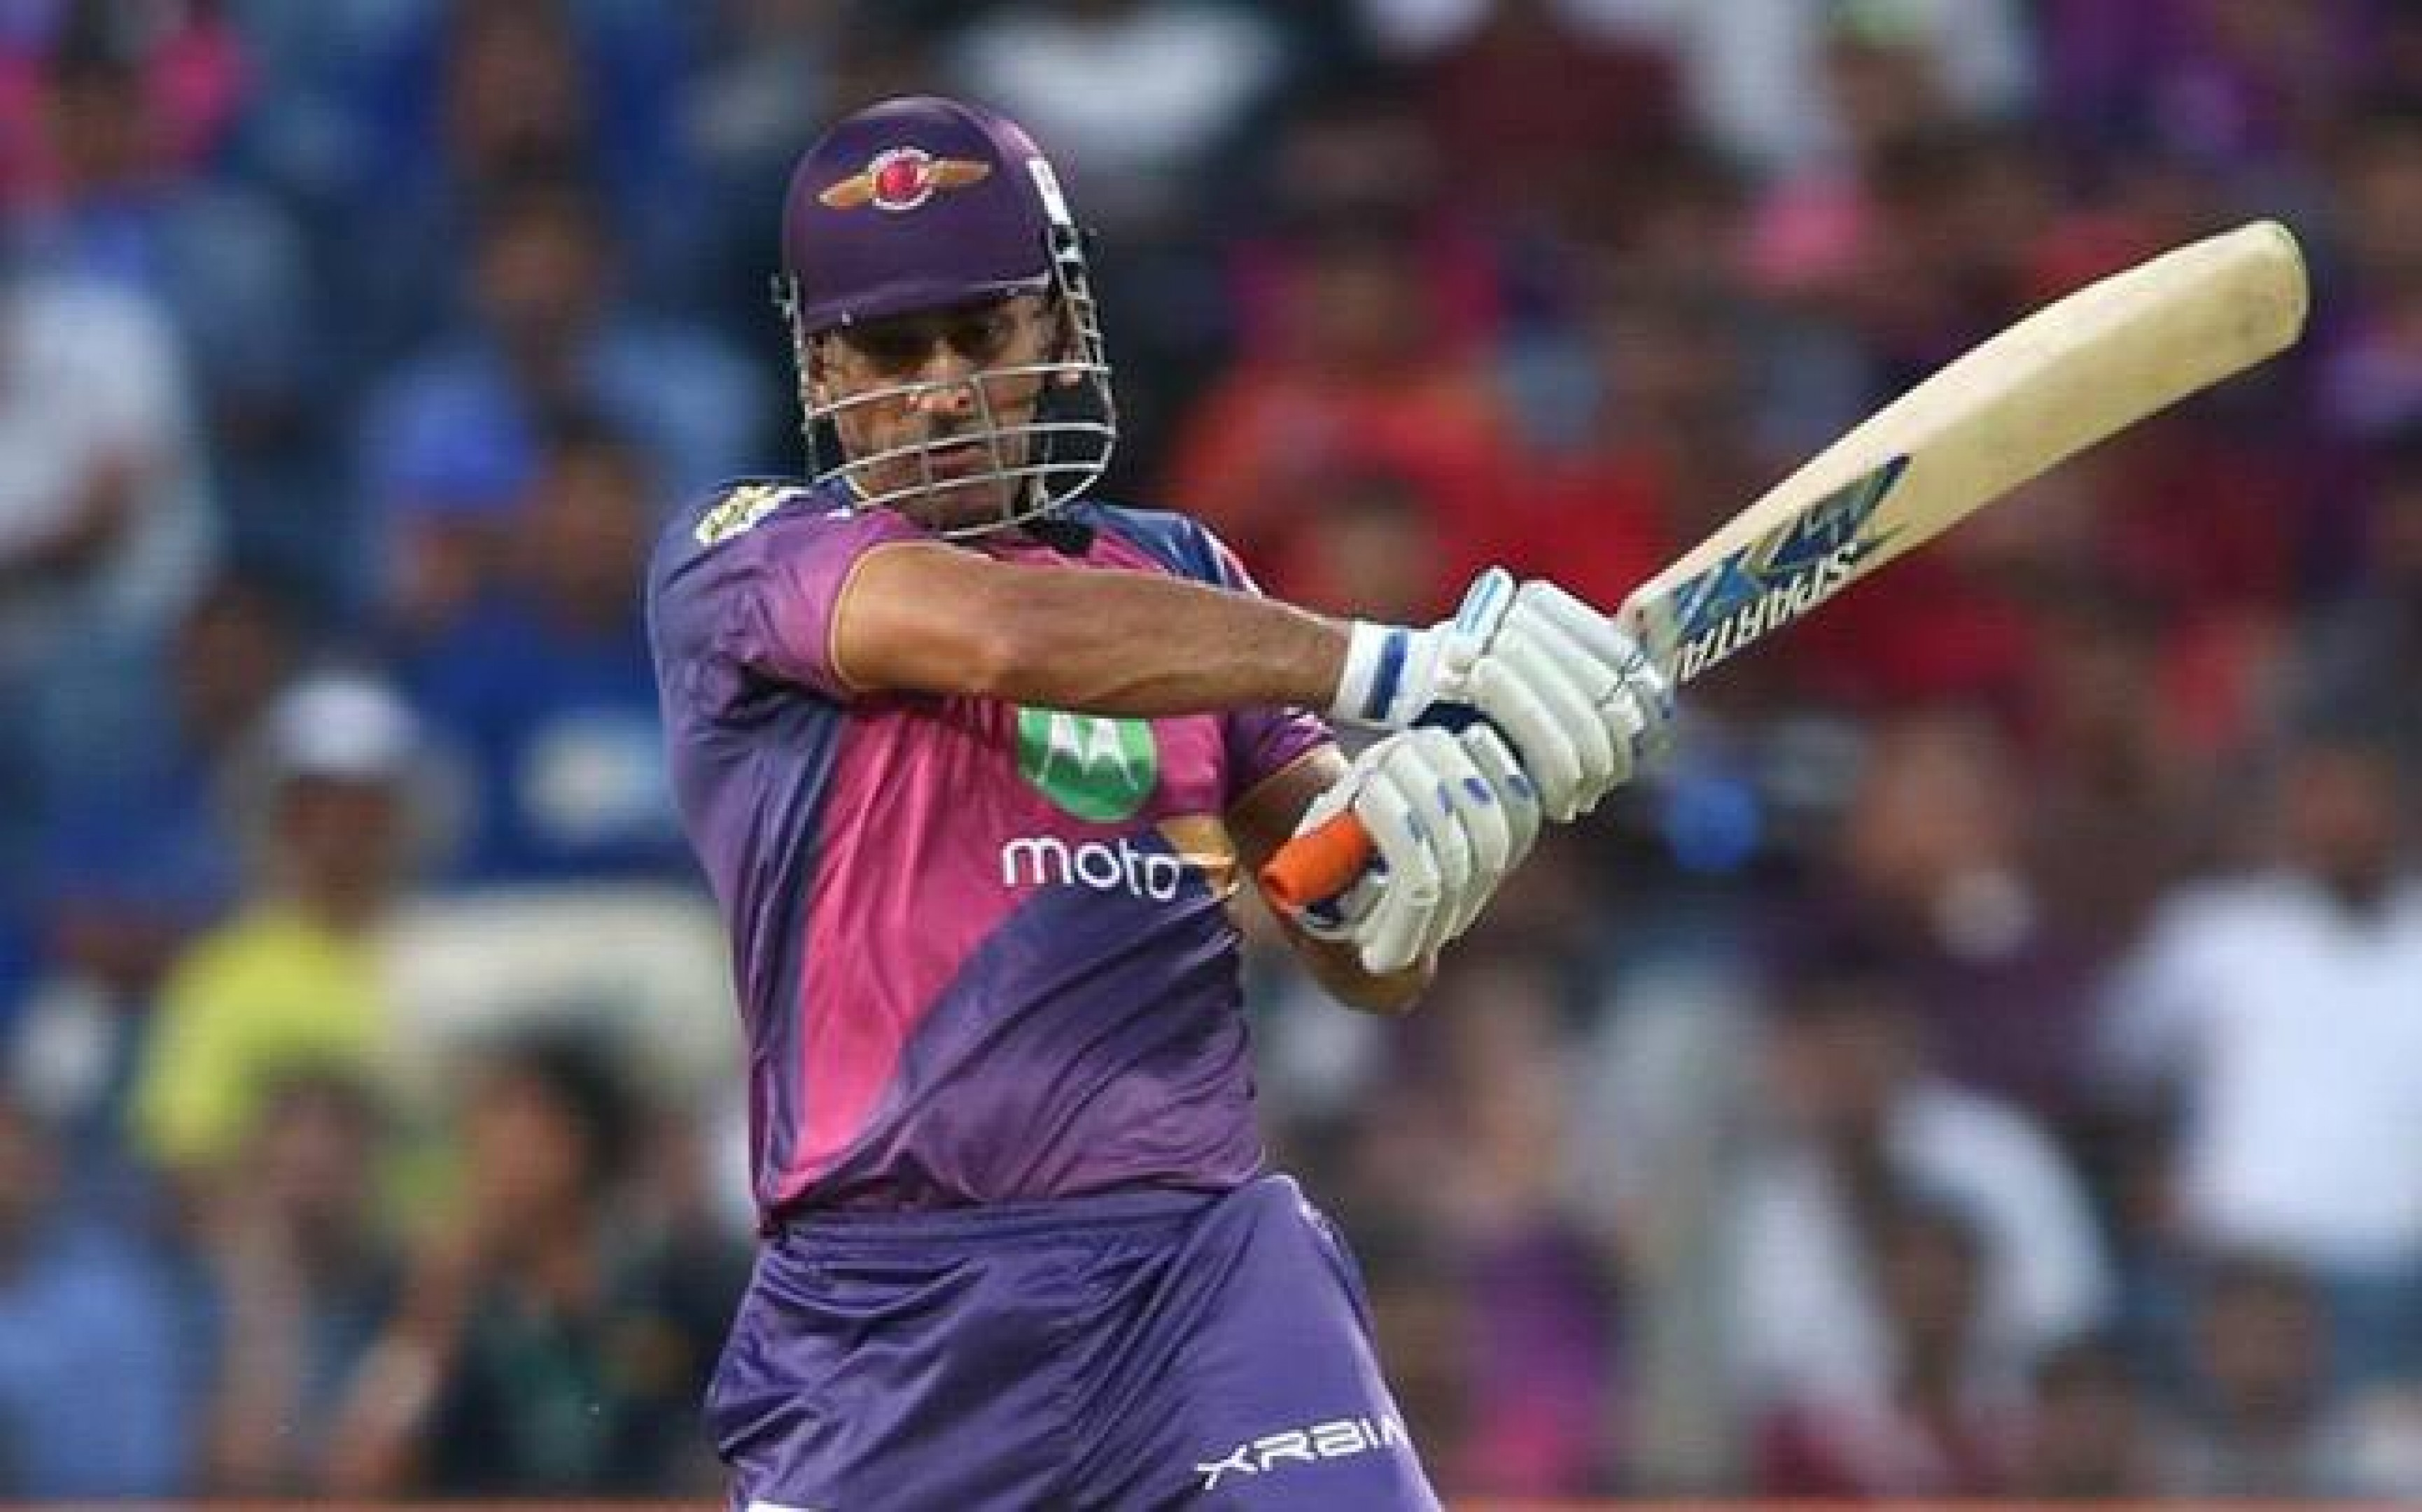 Ms Dhoni Ipl 10 Pune Supergiants Hd Wallpapers Freshwidewallpapers Com 4k 5k 8k Hd Desktop Wallpapers For Ultra High Definition Widescreen Desktop Tablet Smartphone Wallpapers